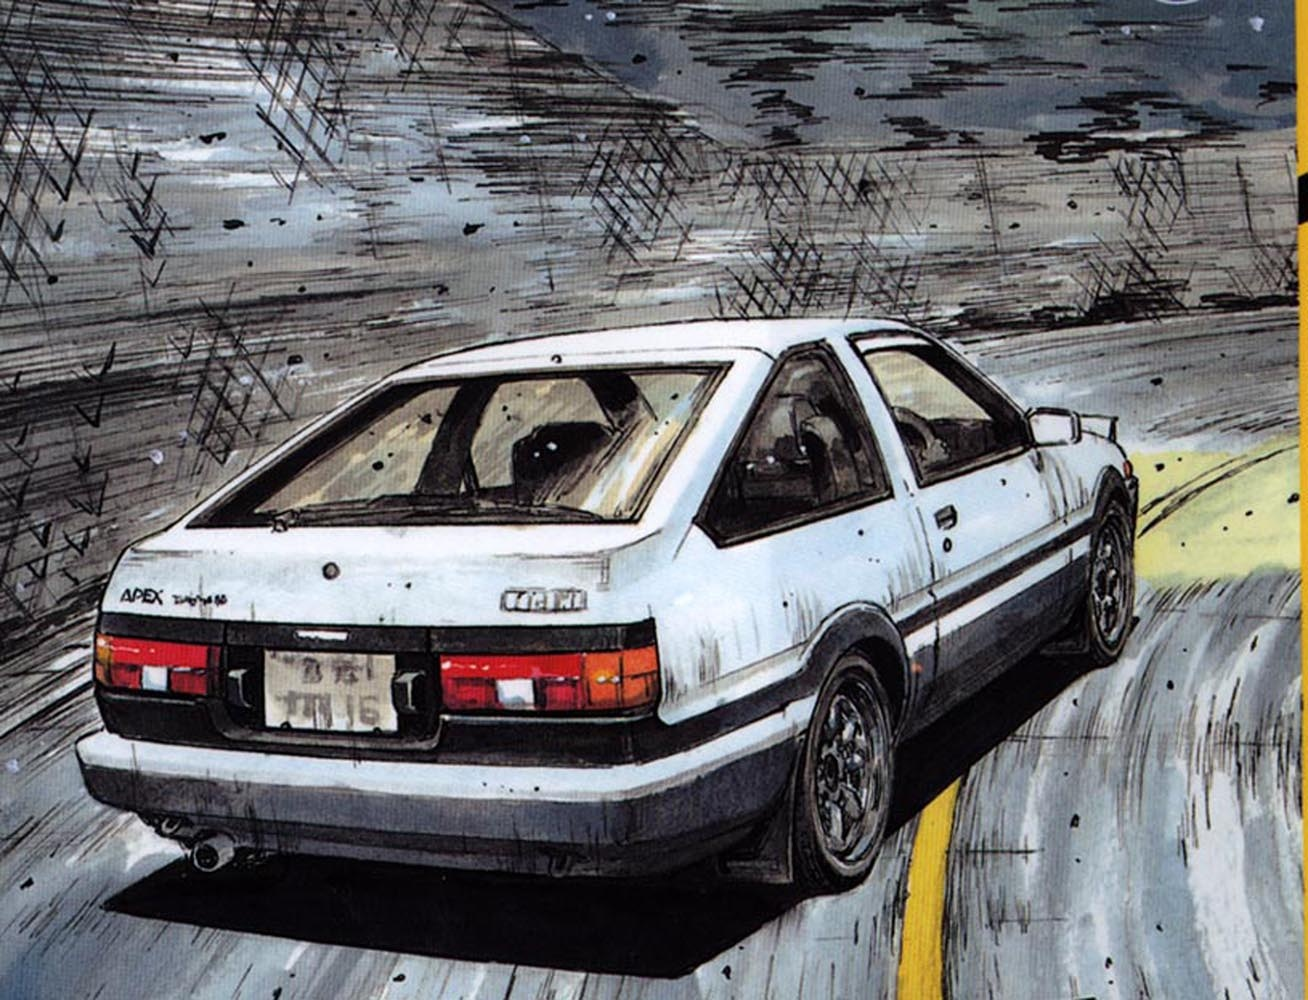 Why do we love initial d